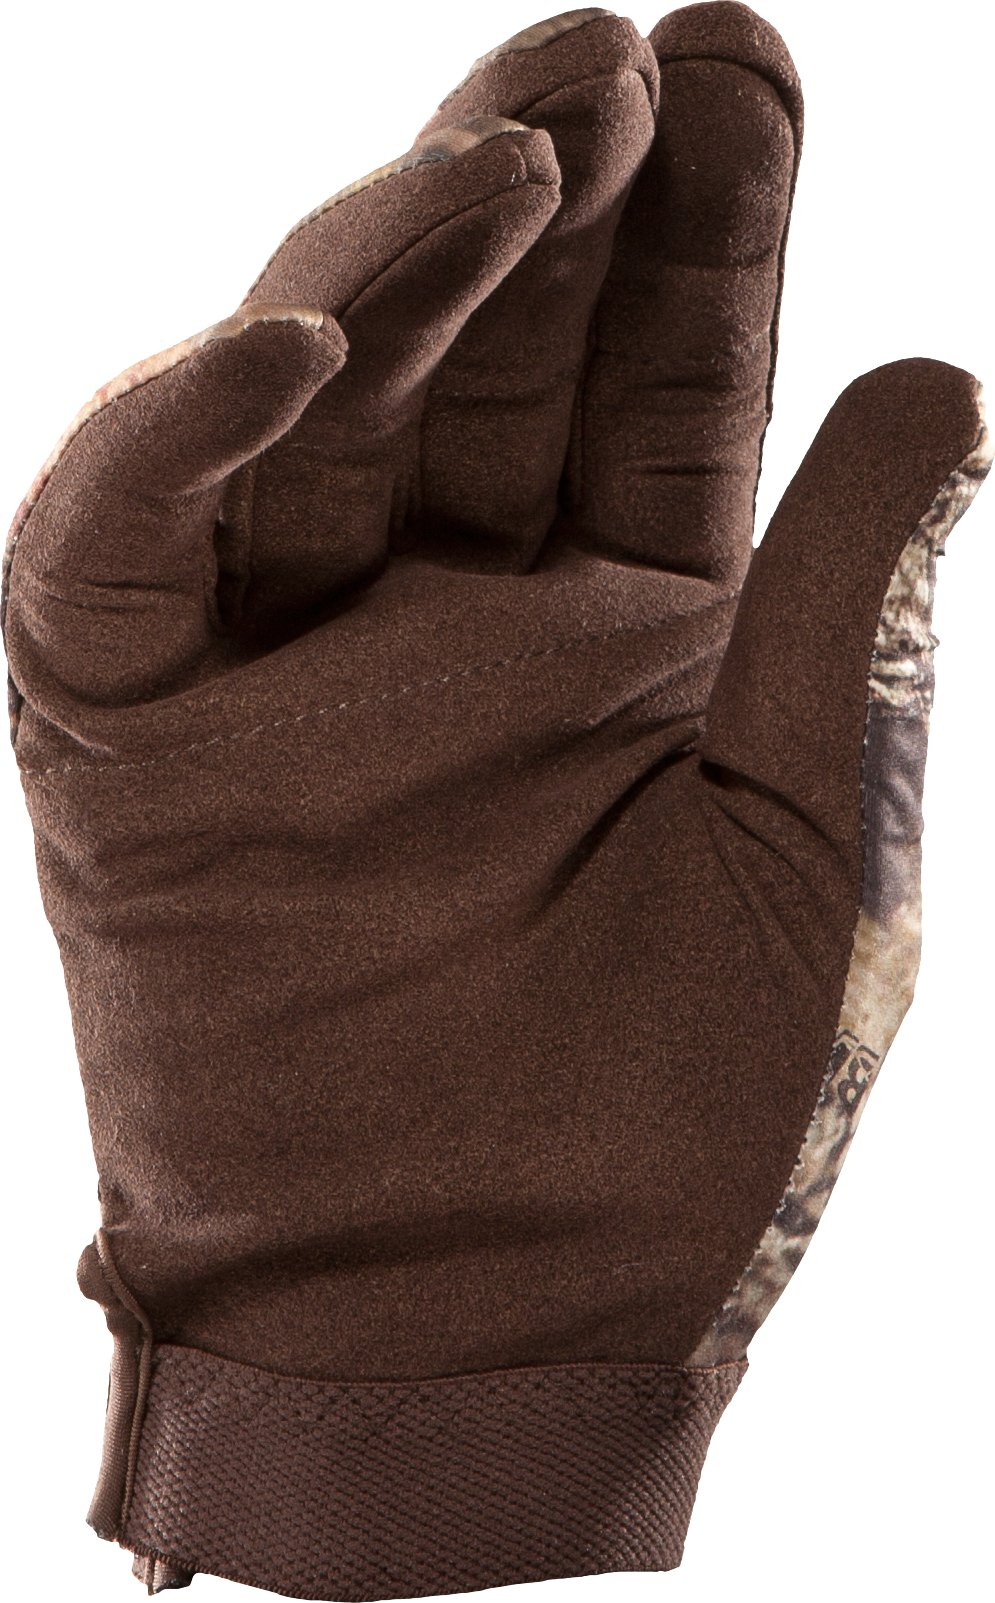 Men's Camo Idylwild Gloves, Mossy Oak Break-Up Infinity